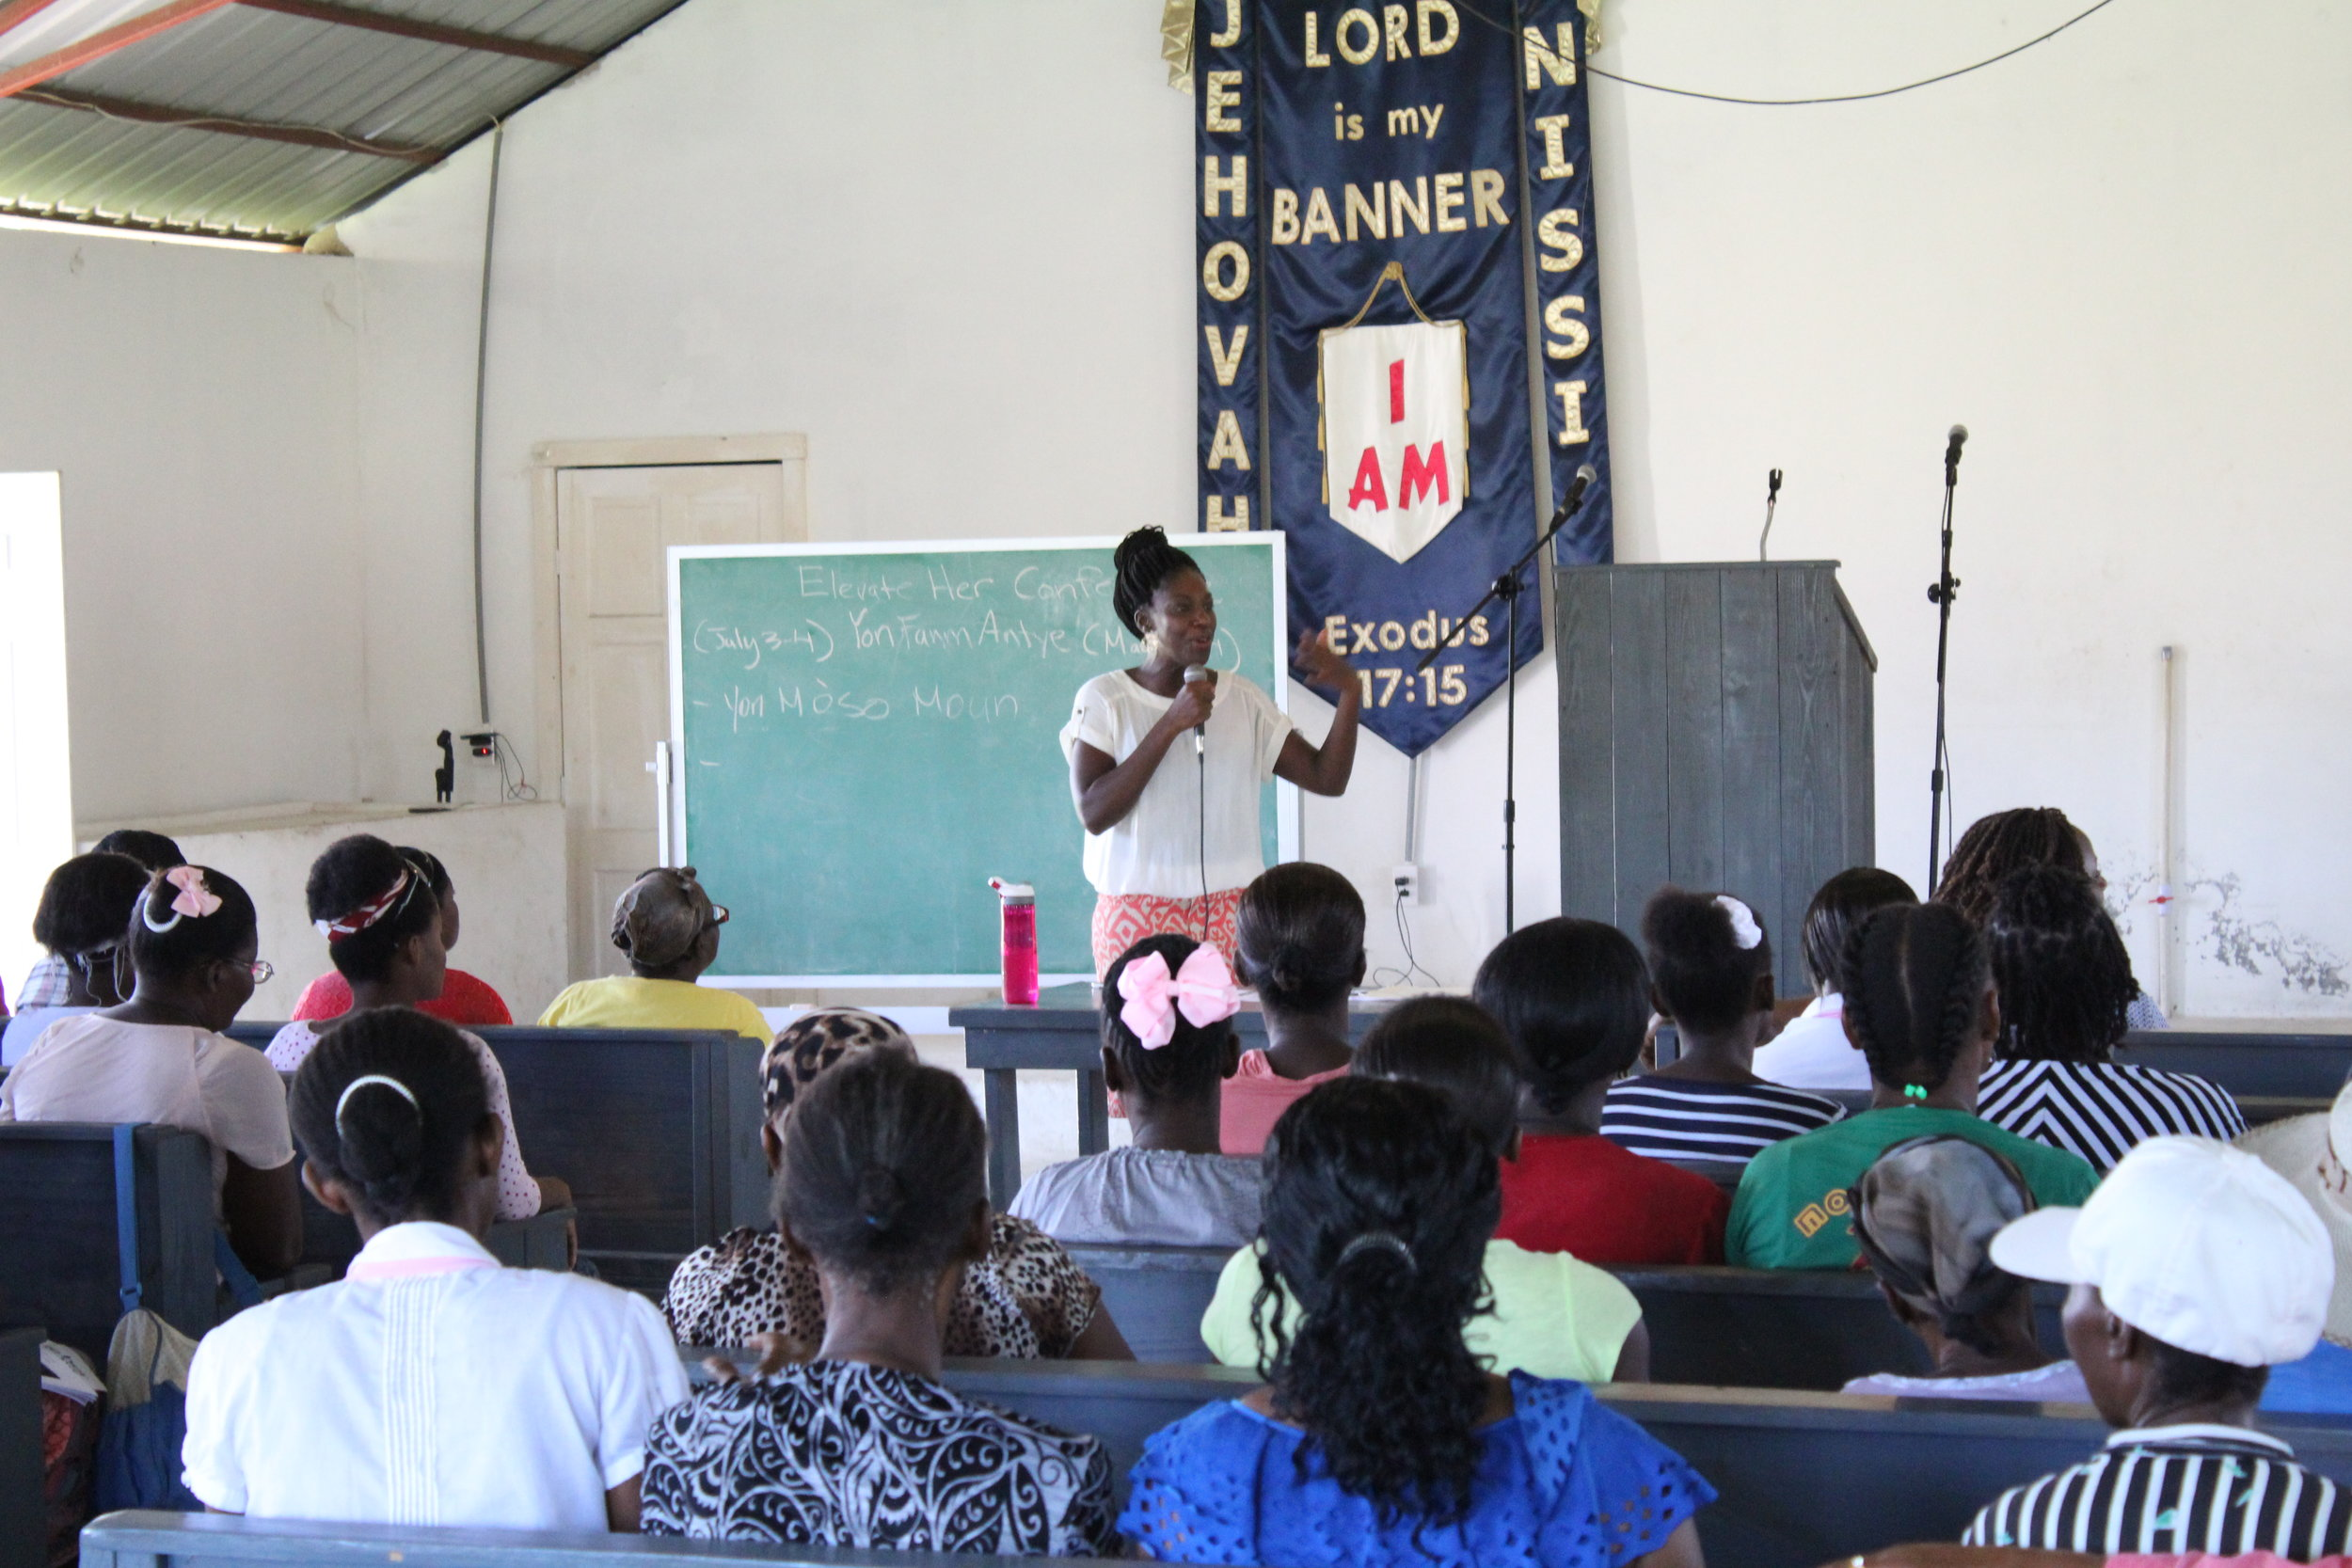 Dieula teaching at the women's conference.